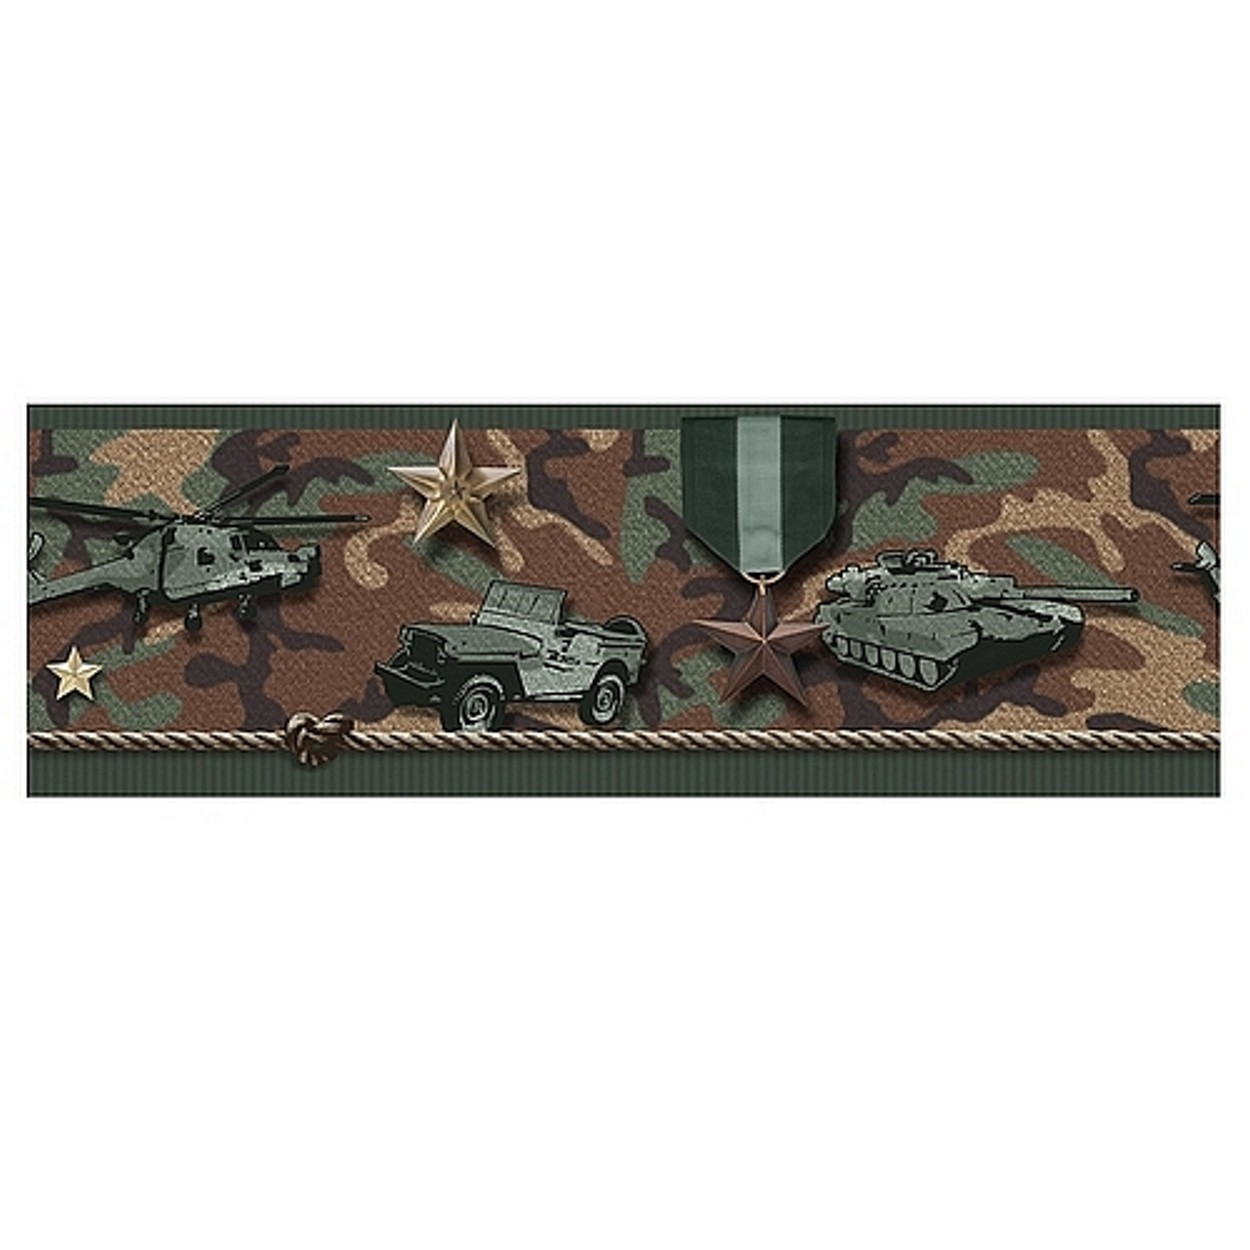 Wallpaper Camo Border Illustrazion 1250x1250